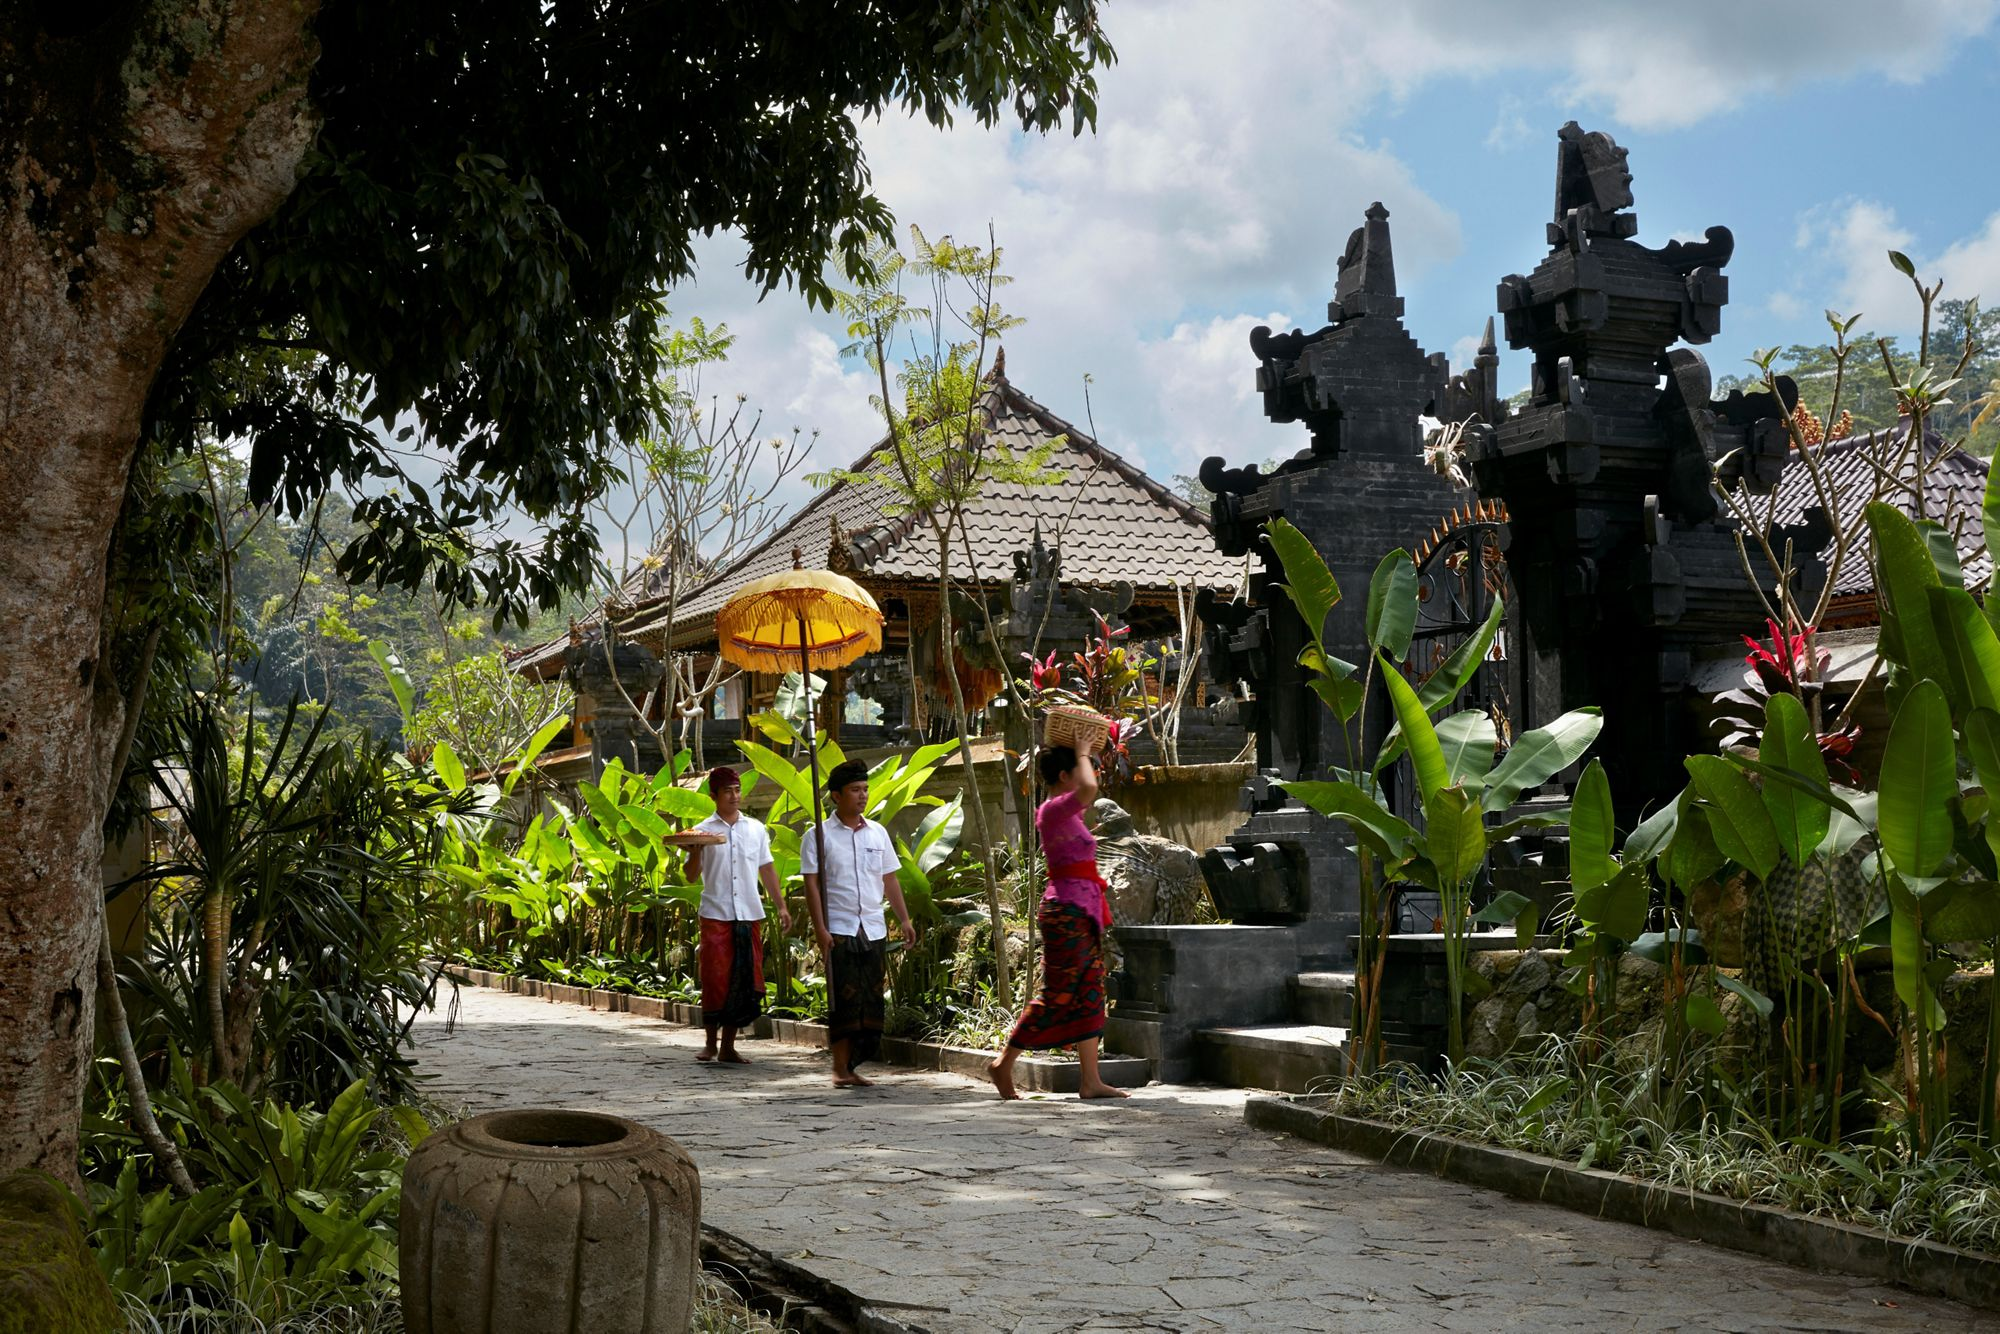 Mandapa Temple: A woman and two men on a paved walkway carrying offerings to a temple. Image courtesy of the Mandapa Resort.